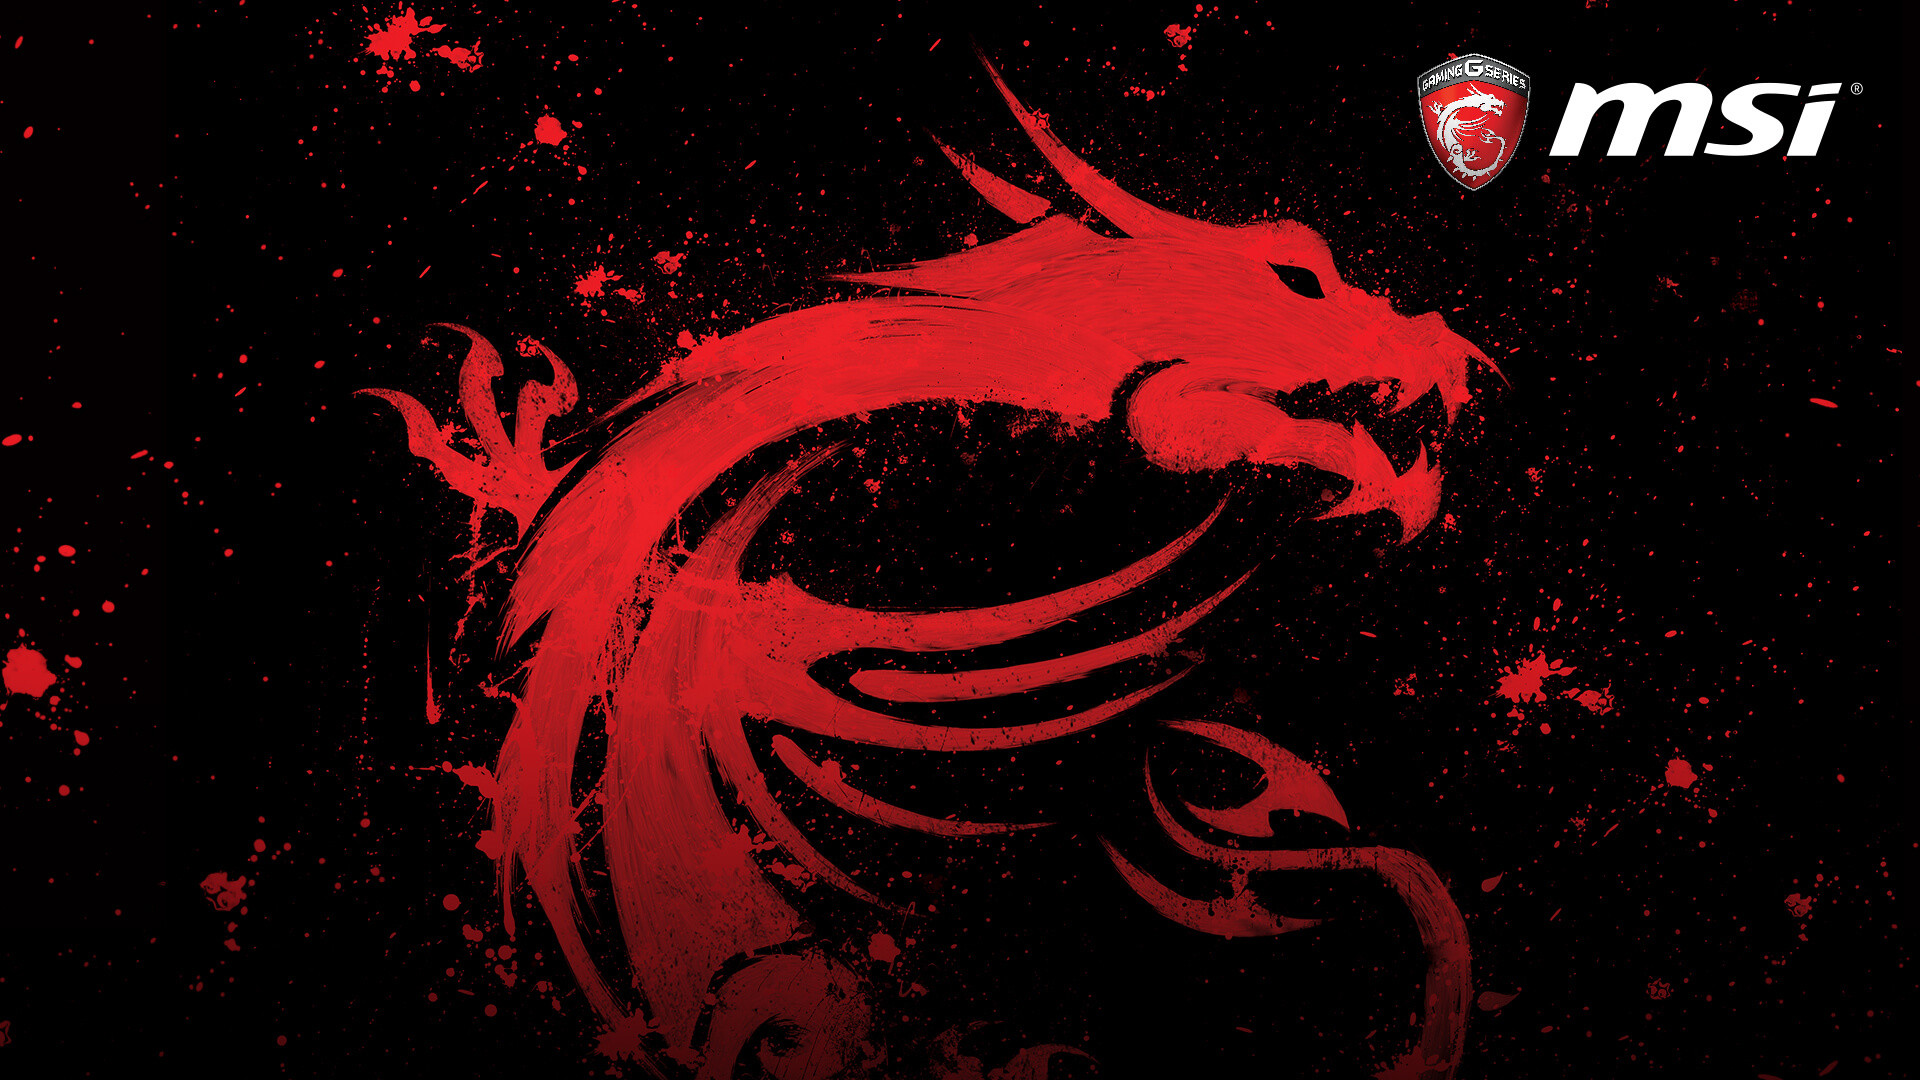 Msi Wallpaper Full Hd Msi Dragon Wallpaper 1920x1080 80 Images